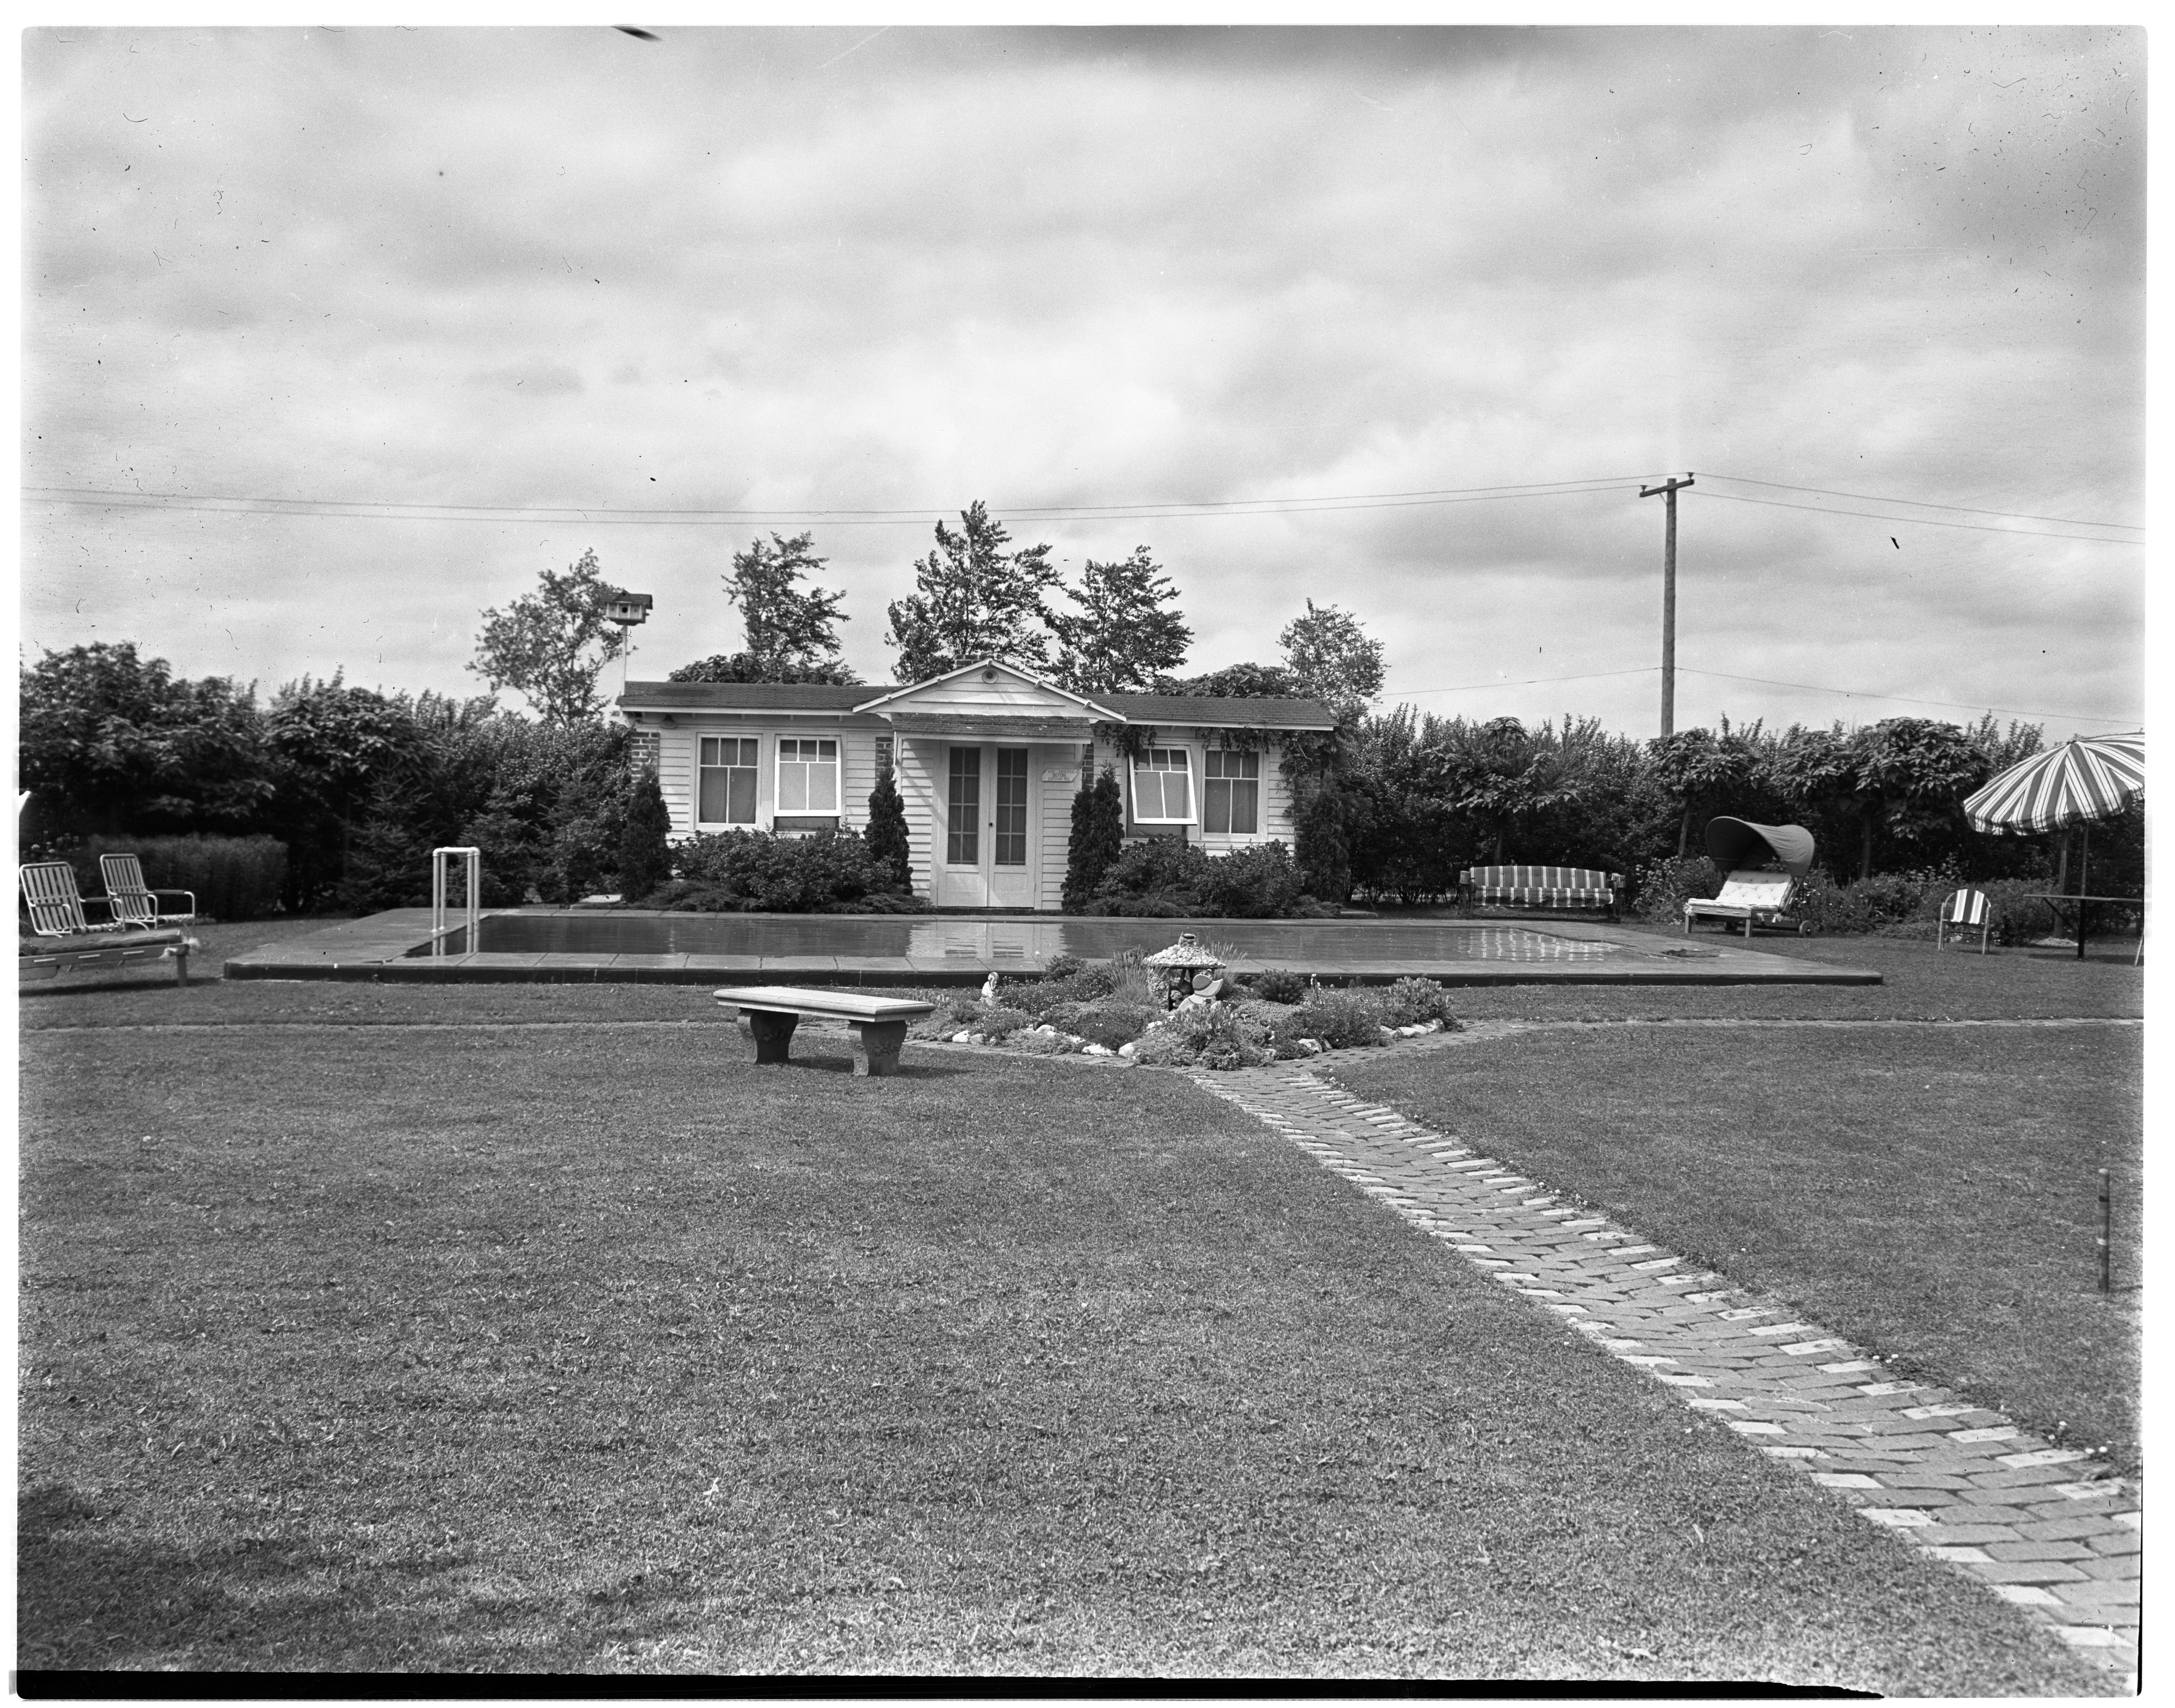 La Pointe House and Garden, July 1938 image